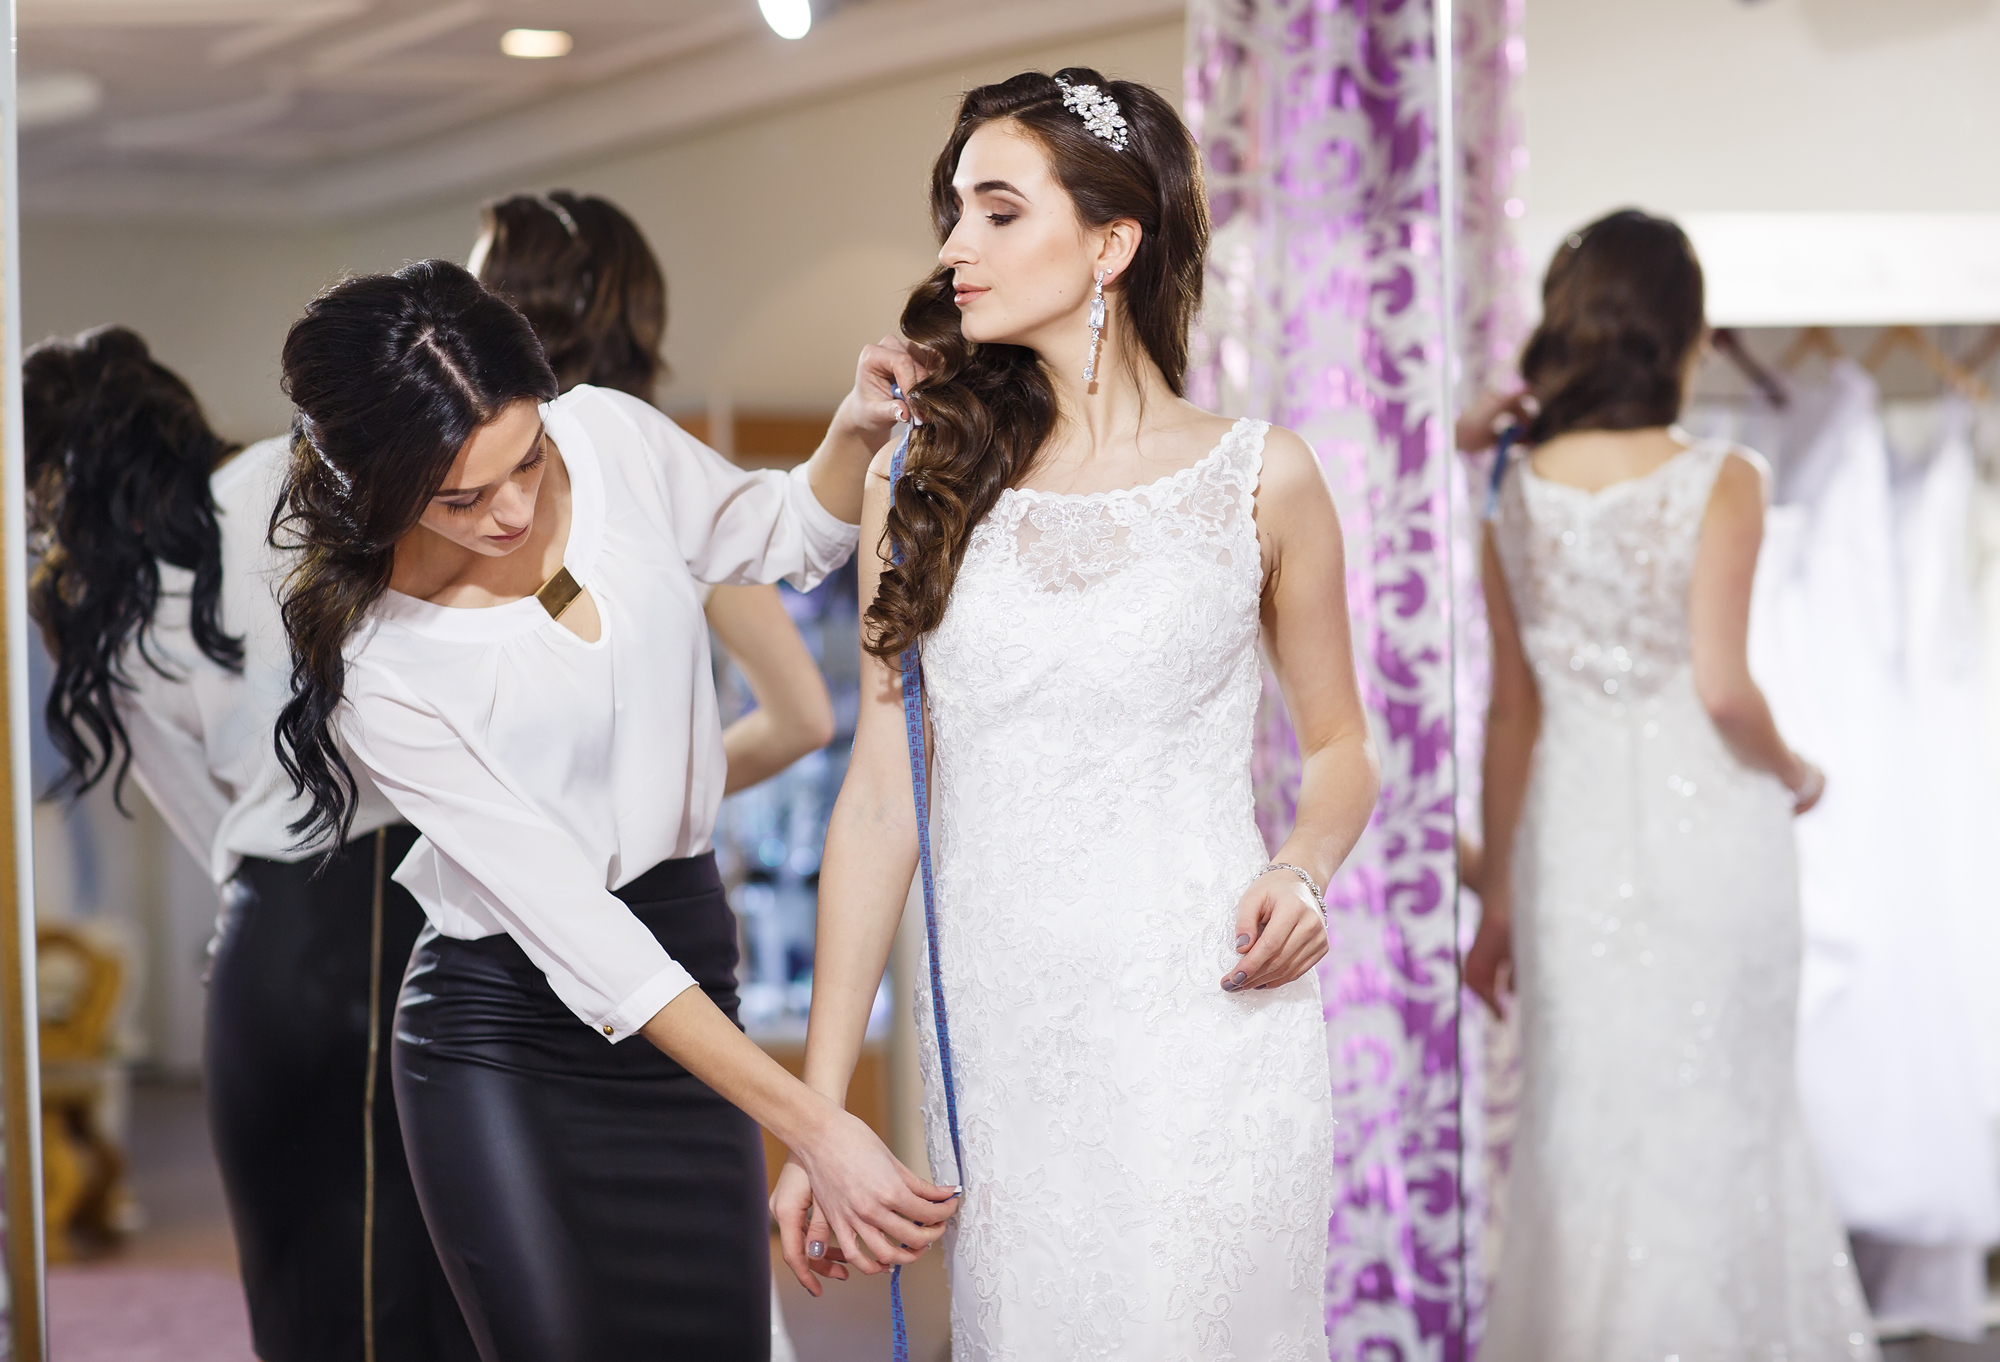 3 Important Things to Tell Your Bridal Consultant